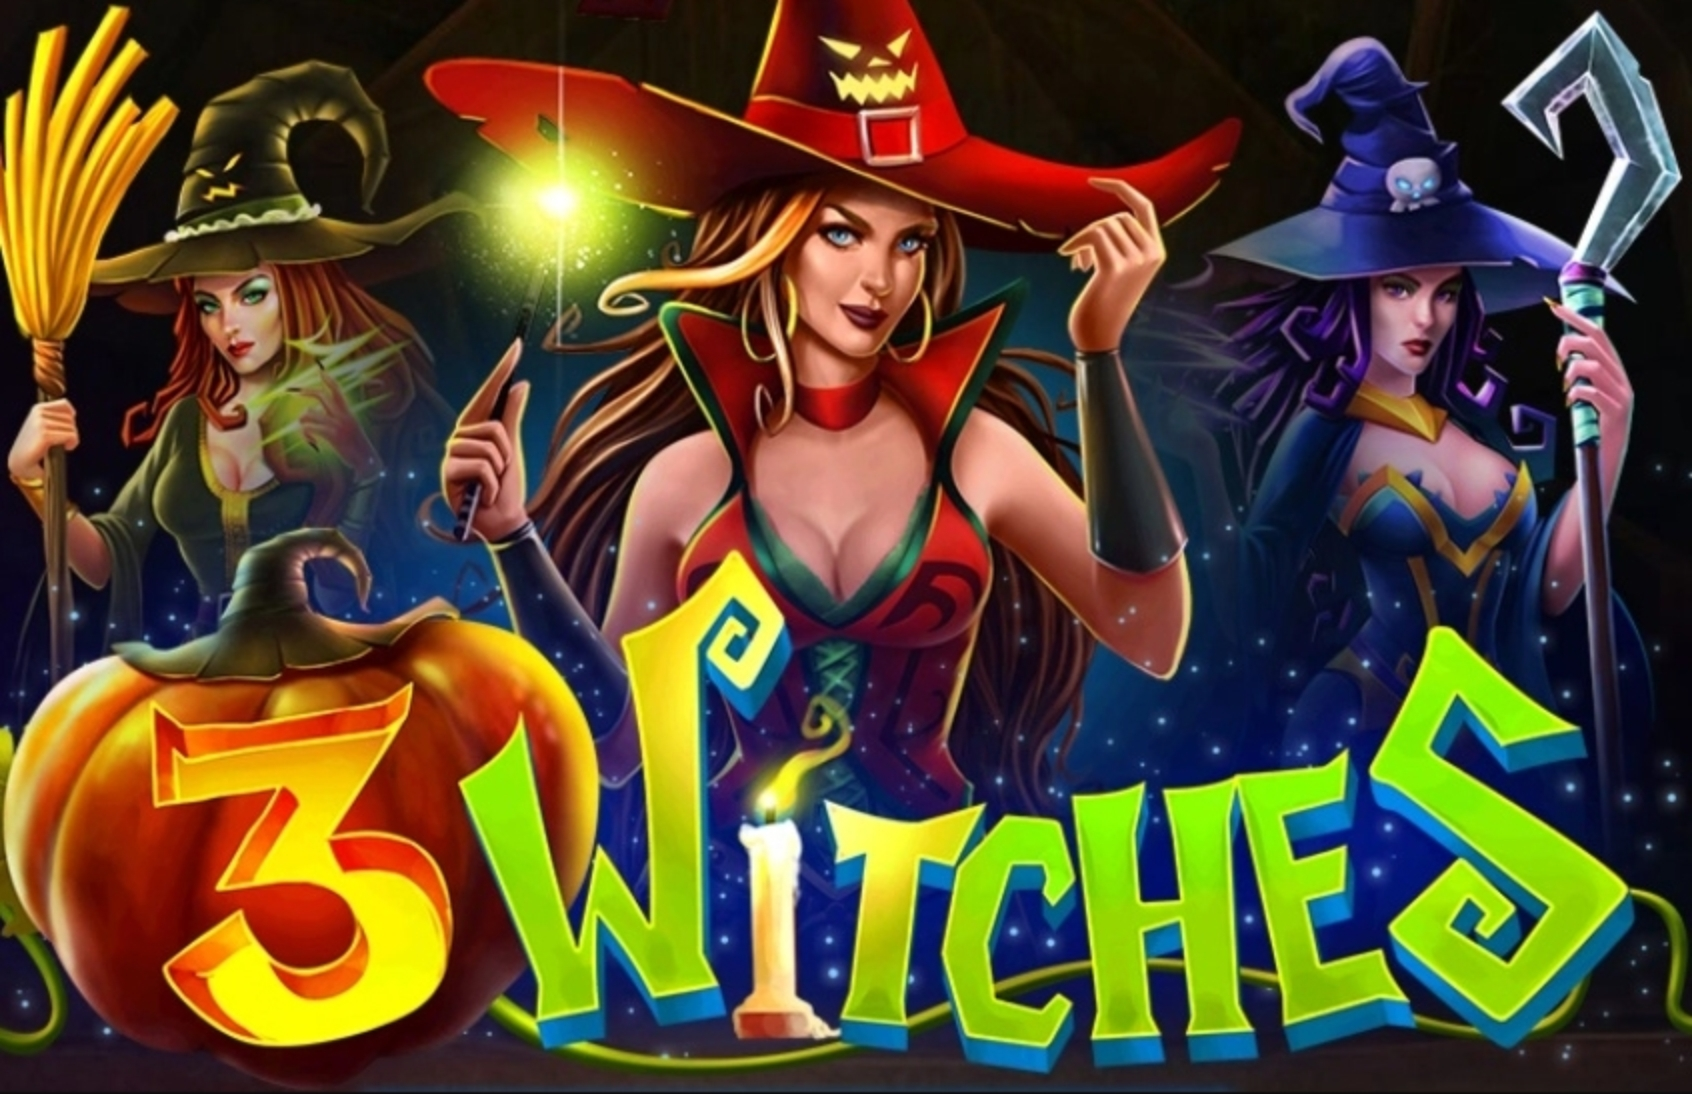 The 3 Witches Online Slot Demo Game by The Stars Group